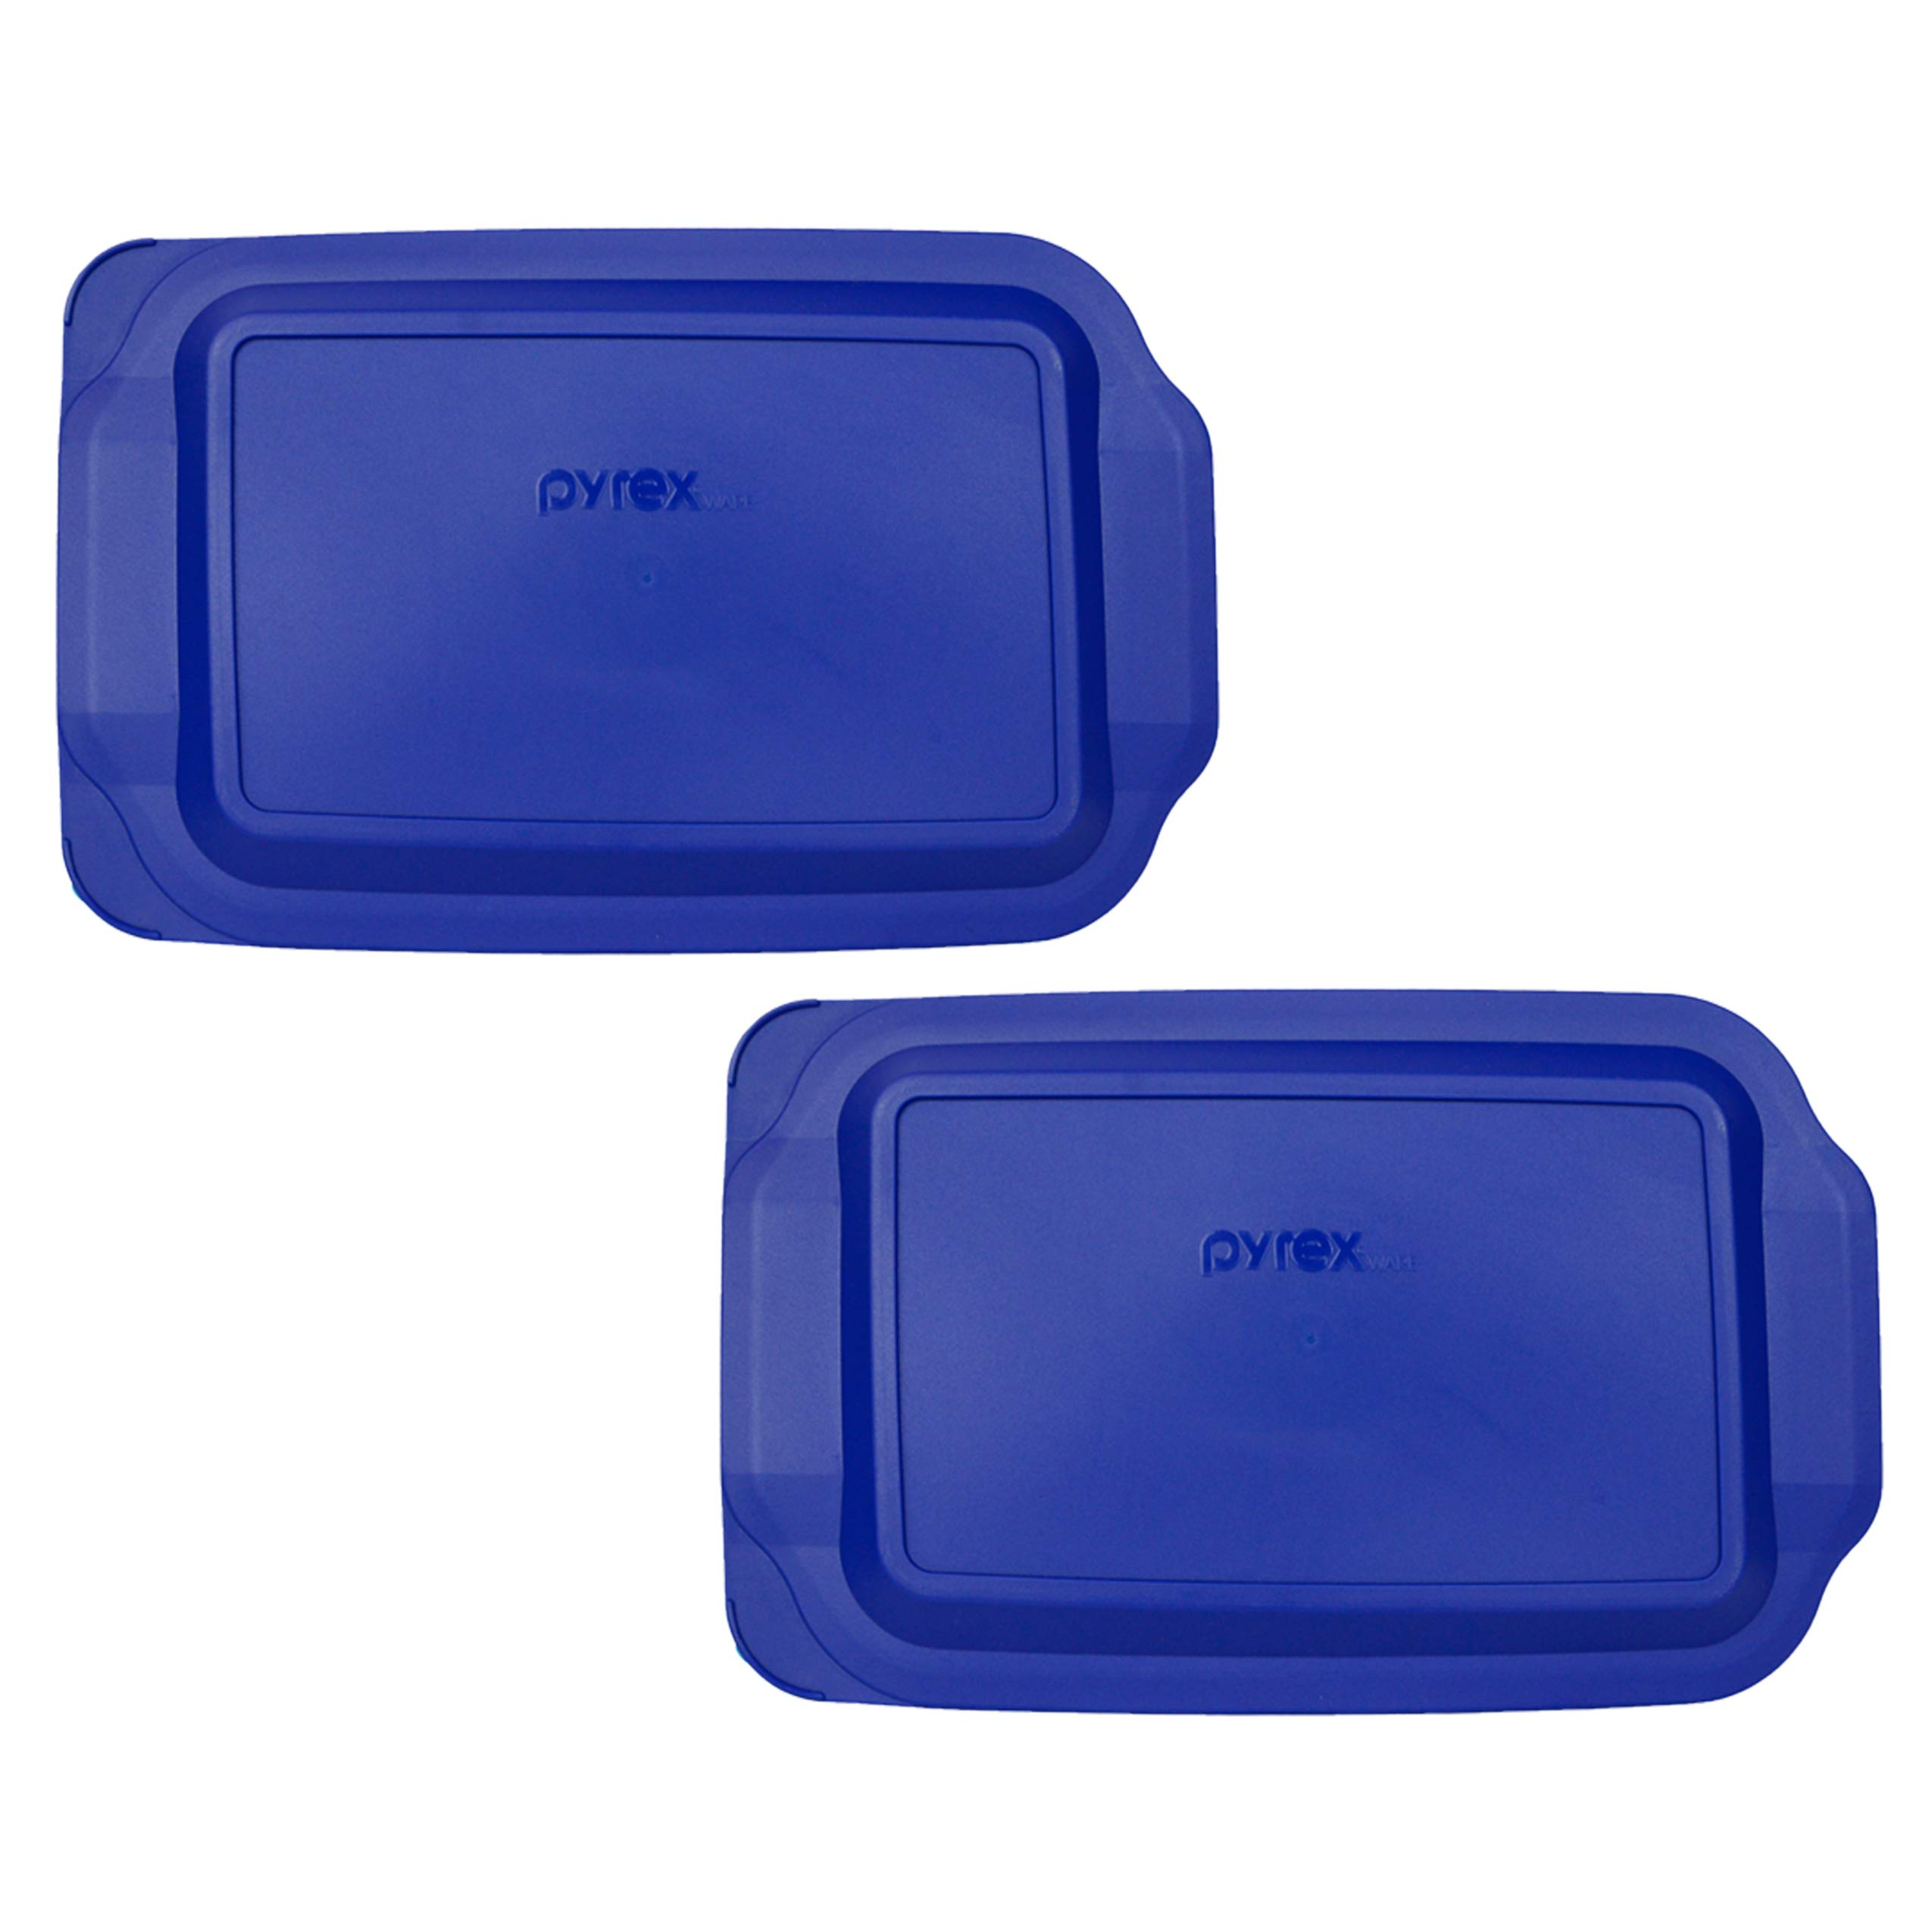 (2) Pyrex 233-PC 3 Quart Blue 9'' x 13'' Baking Dish Lids - Will NOT Fit Easy Grab Baking Dish by Pyrex